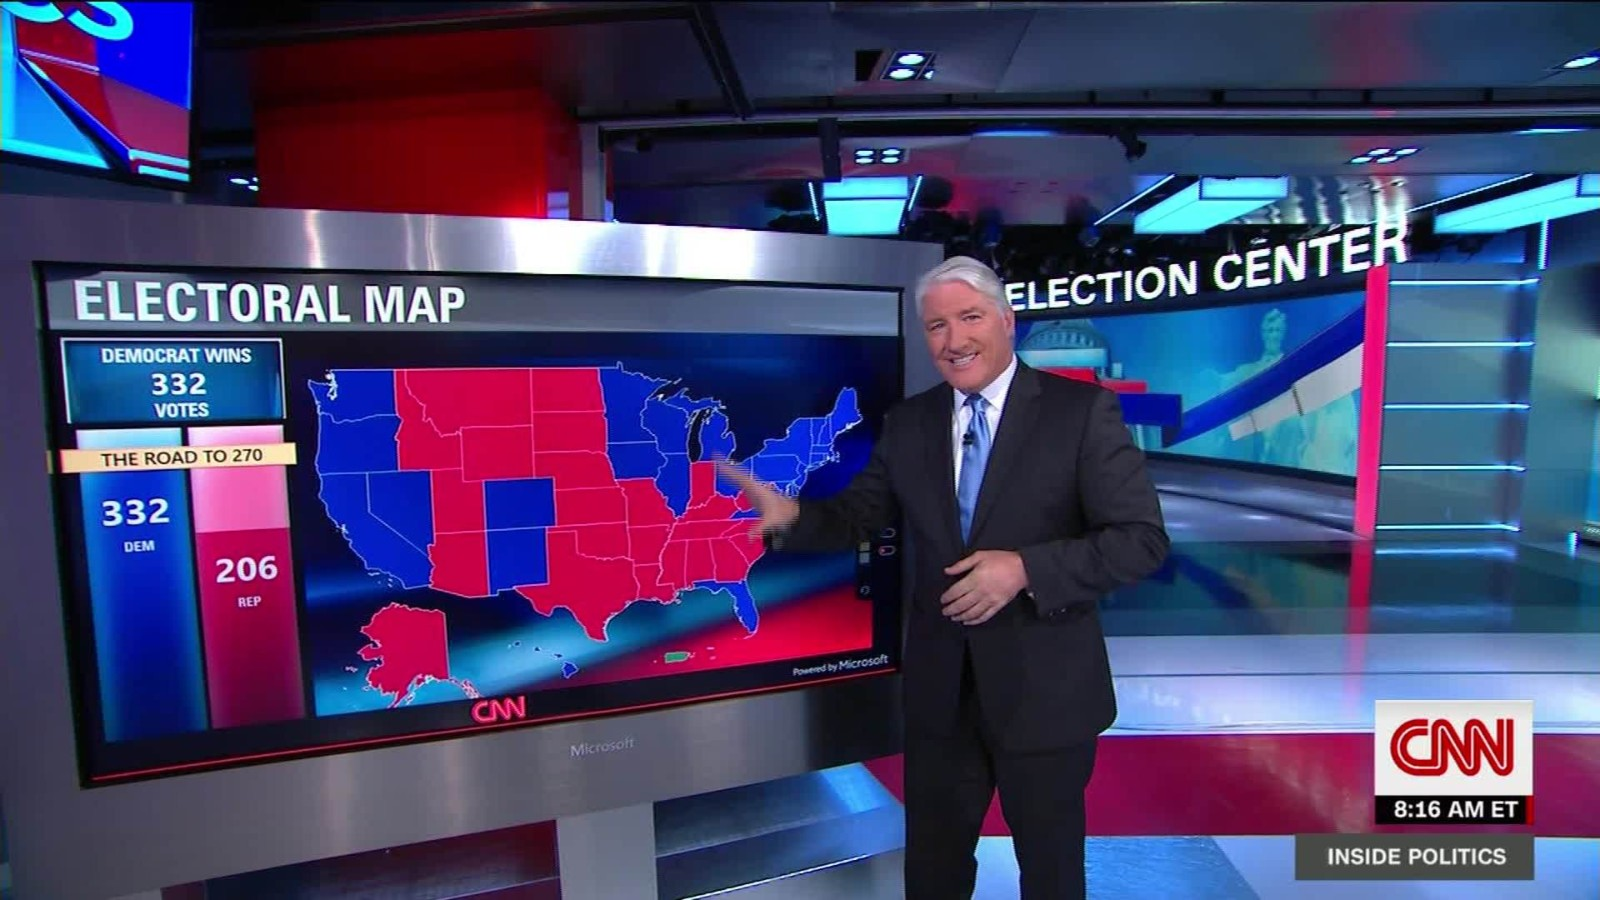 This Is What Trump Hopes The Electoral Map Looks Like CNN Video - Cnn us election map